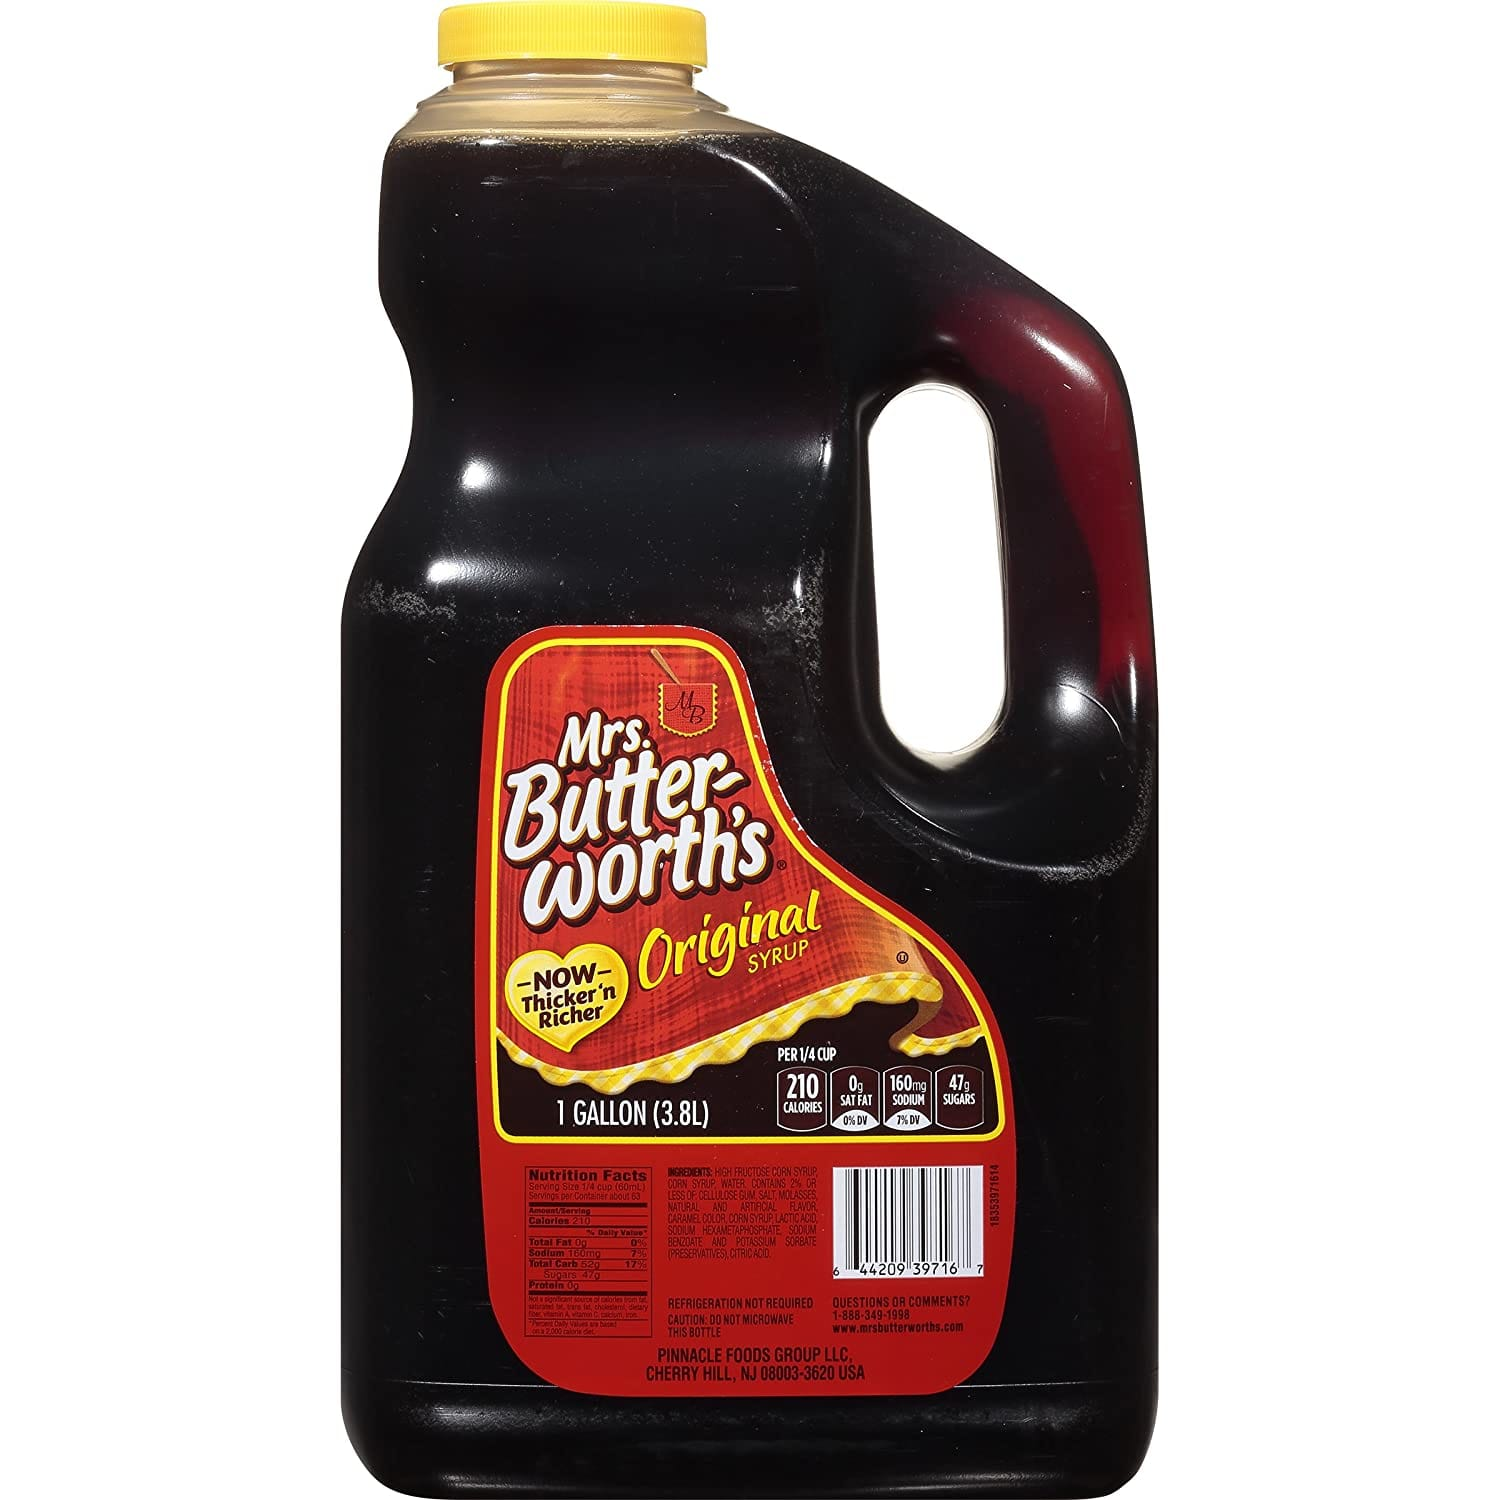 Mrs. Butterworth's Syrup, Original, 1 Gallon as low as $5.80 with 15% S&S $6.82